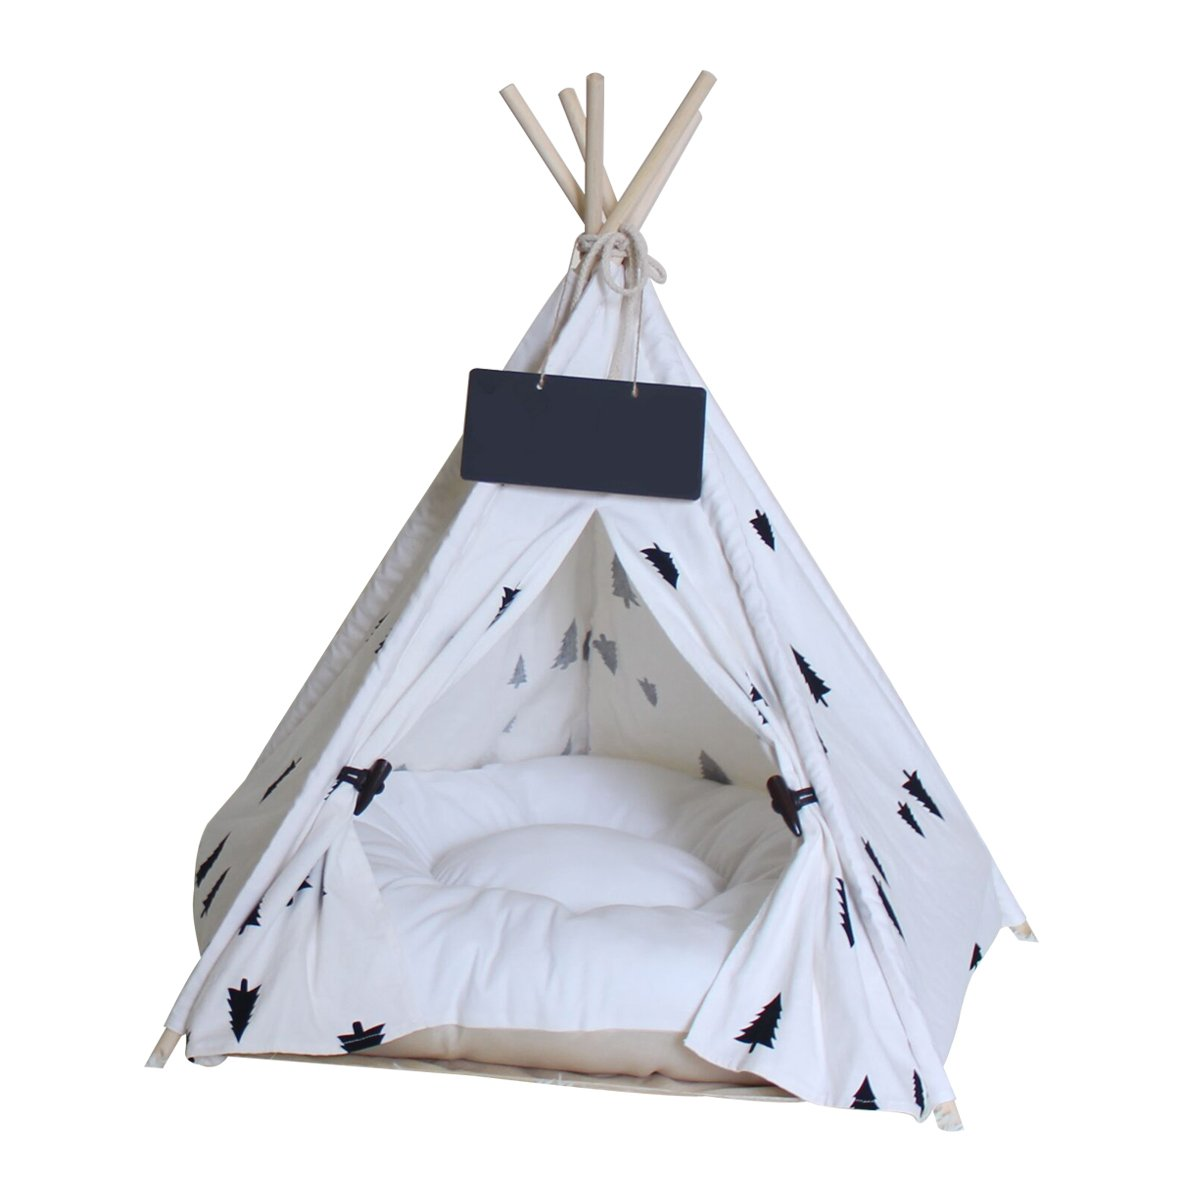 PENCK Pet Teepee Dog & Cat Bed - Portable Dog Tents & Pet Houses with Thick Cushion & Blackboard, 24 Inch Tall, for Pets Up to 15lbs by PENCK